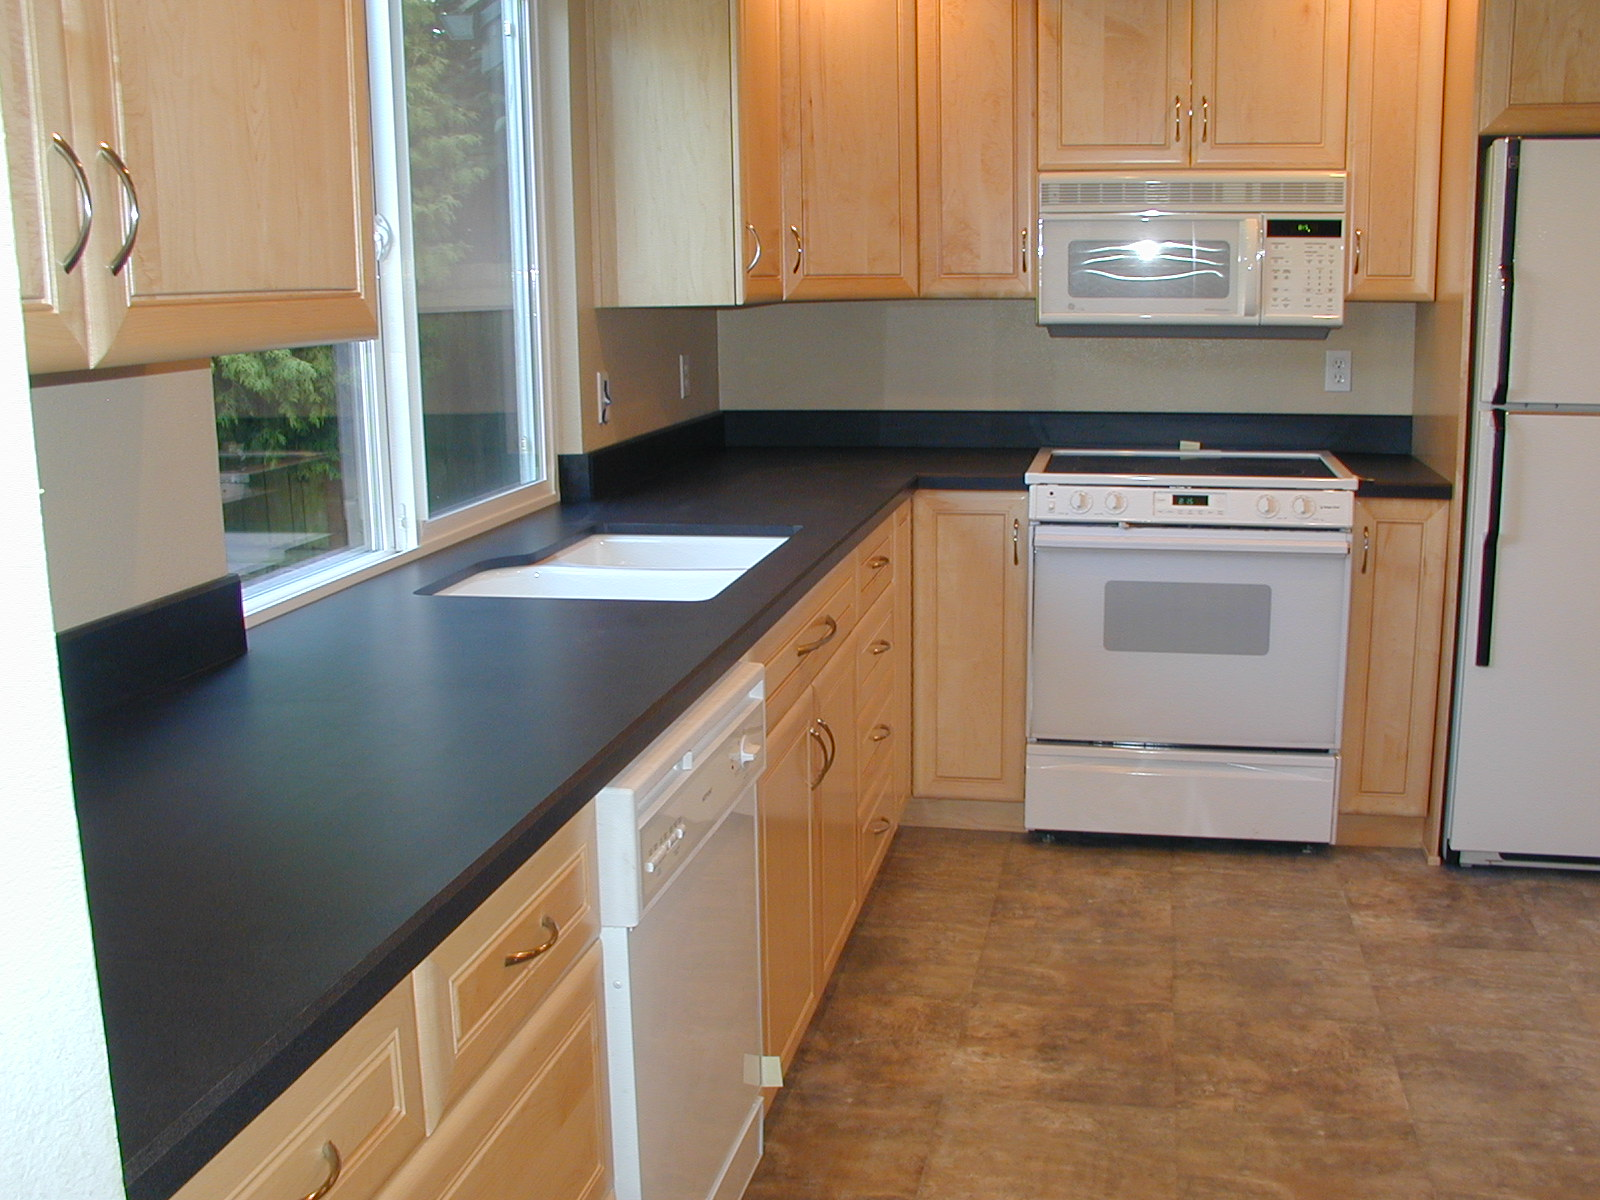 Kitchen Countertops Laminate : countertop design and installation, laminate kitchen countertop ...